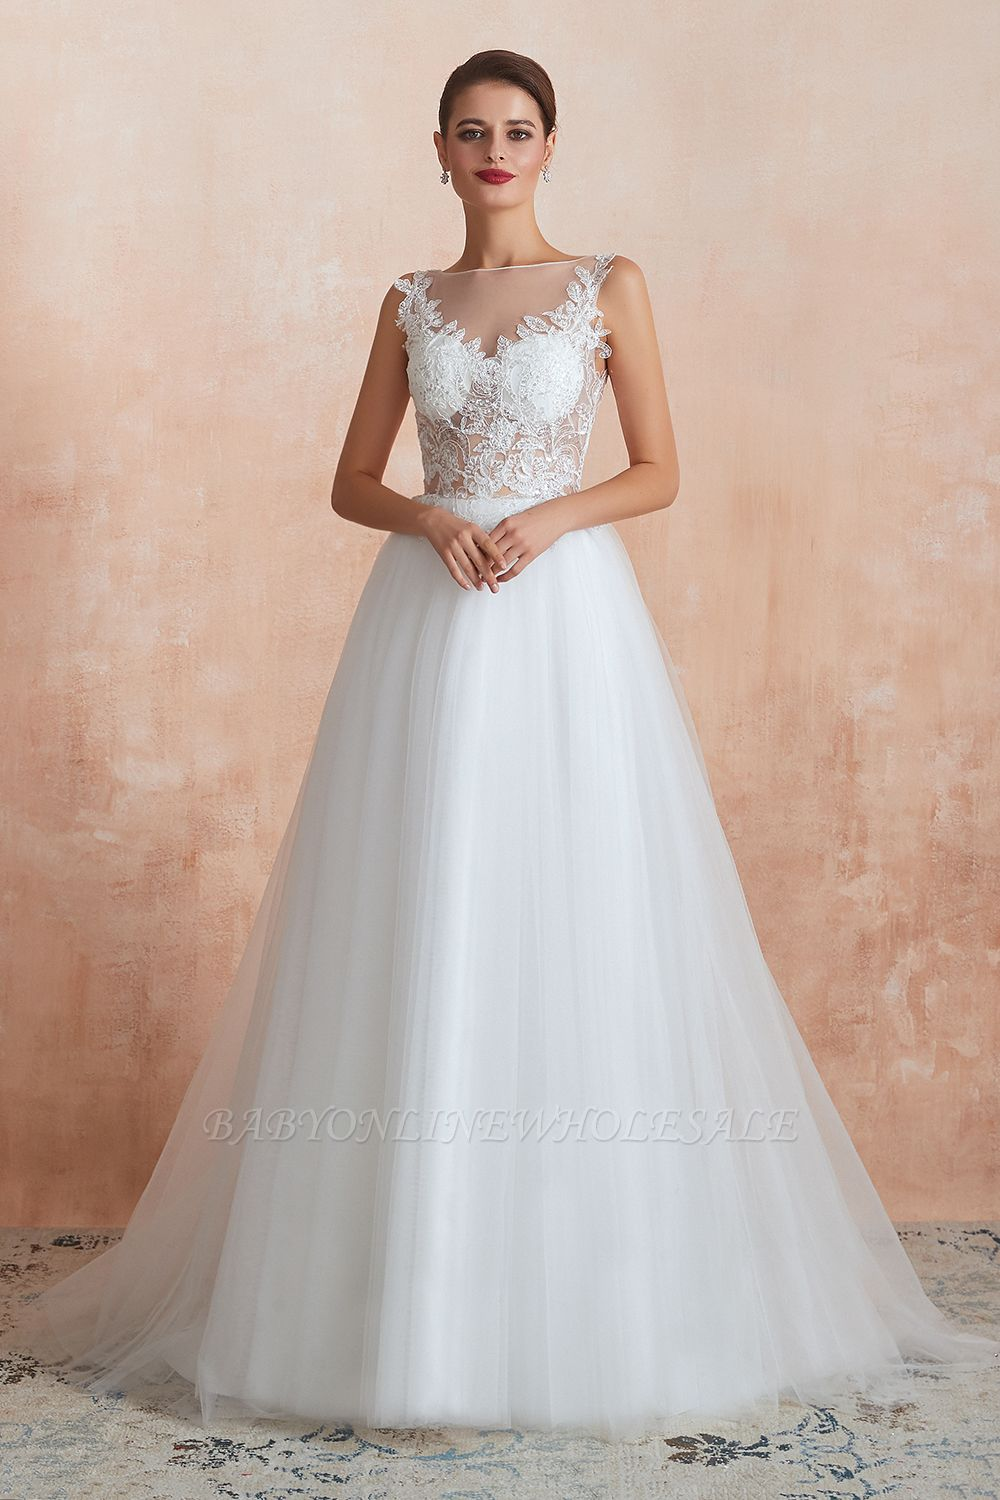 Caltha | Beautiful Bateau neck White Wedding Dress with Sparkling Sequins, Babyonlinedress Design Lace Bridal Gowns